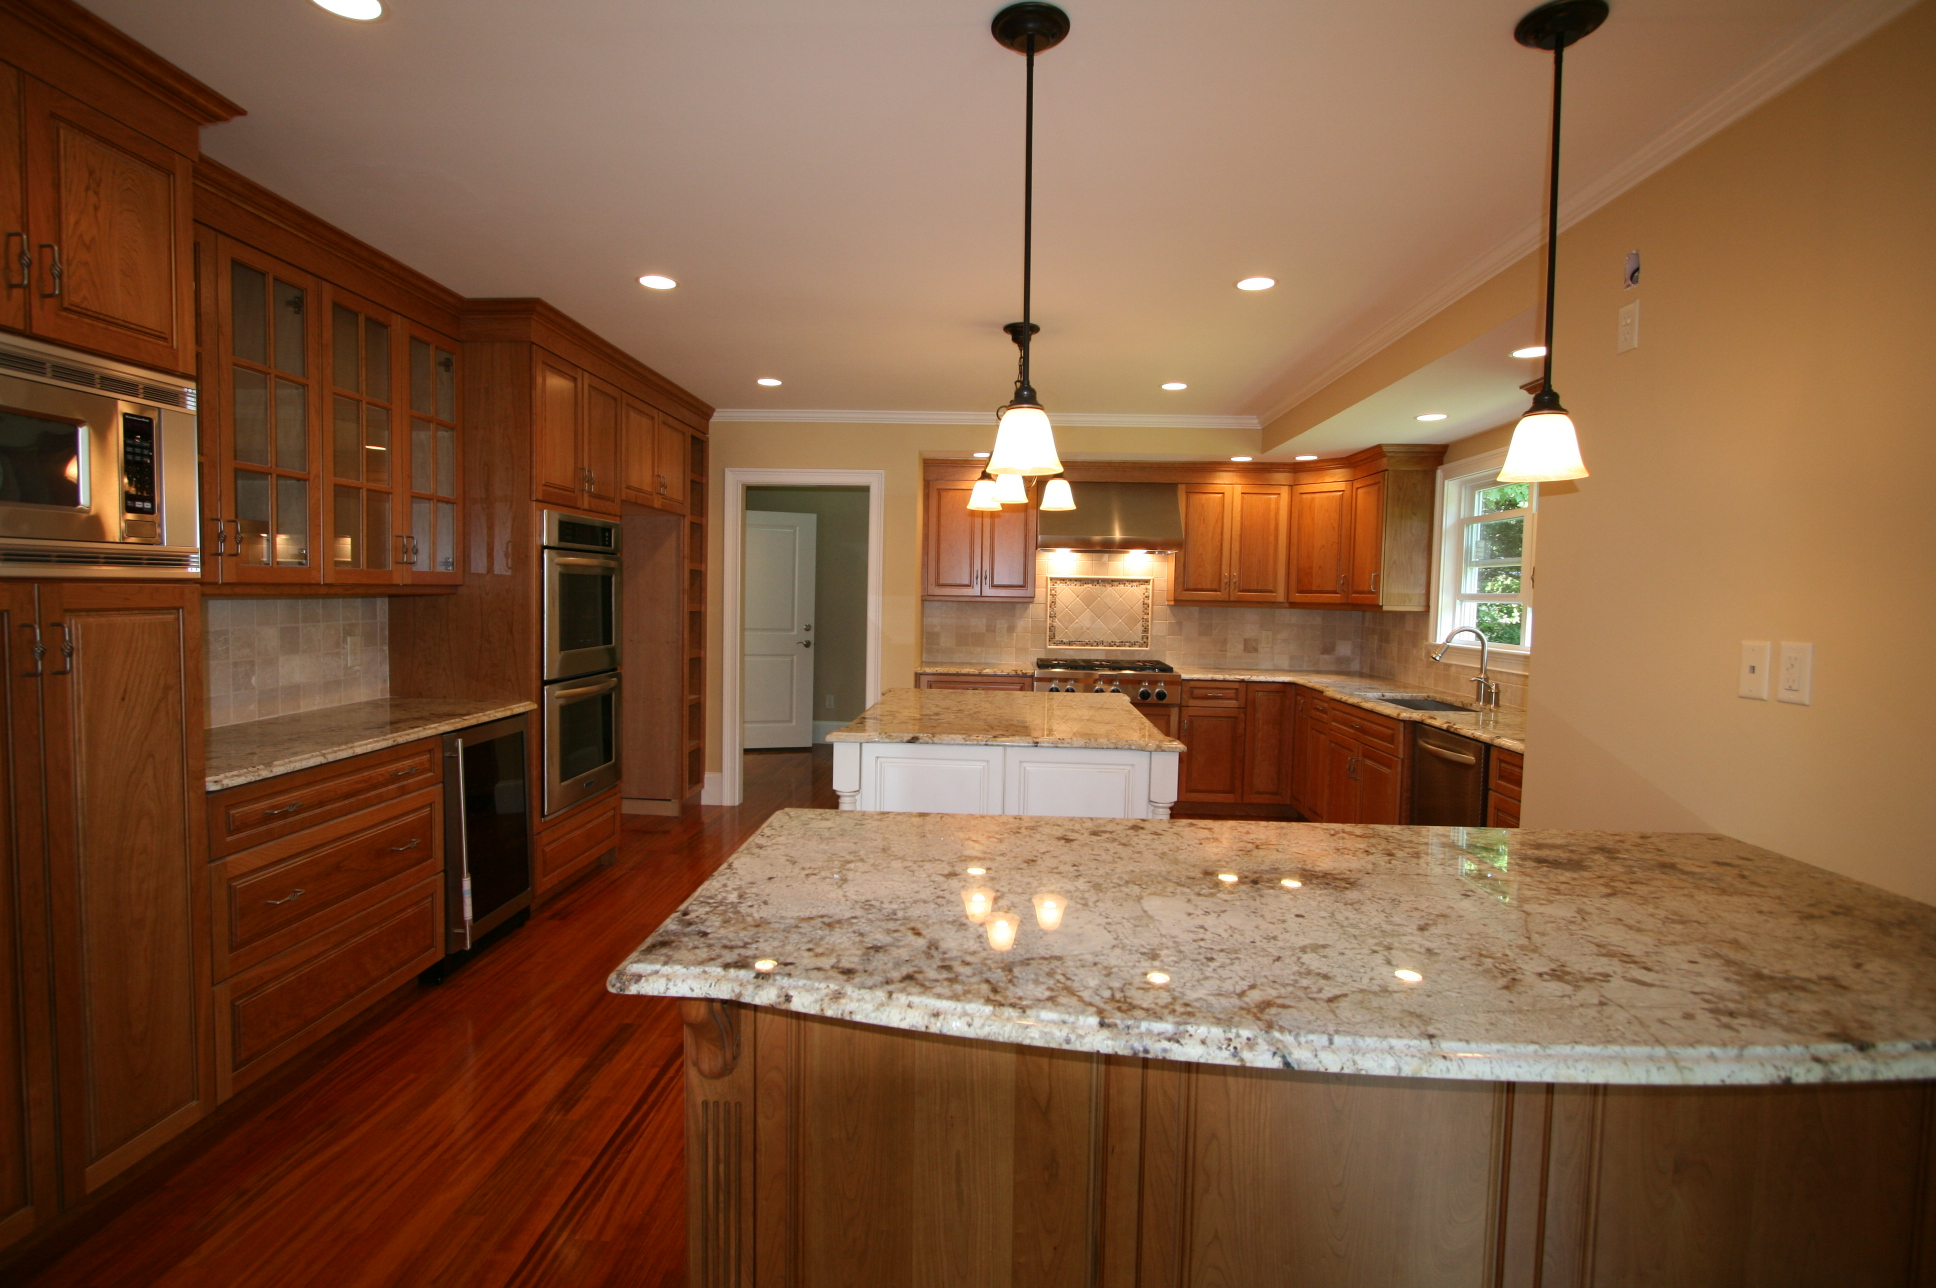 Https Hallidayltd Wordpress Com 2012 02 13 Check Out The Pics Of New Kitchens